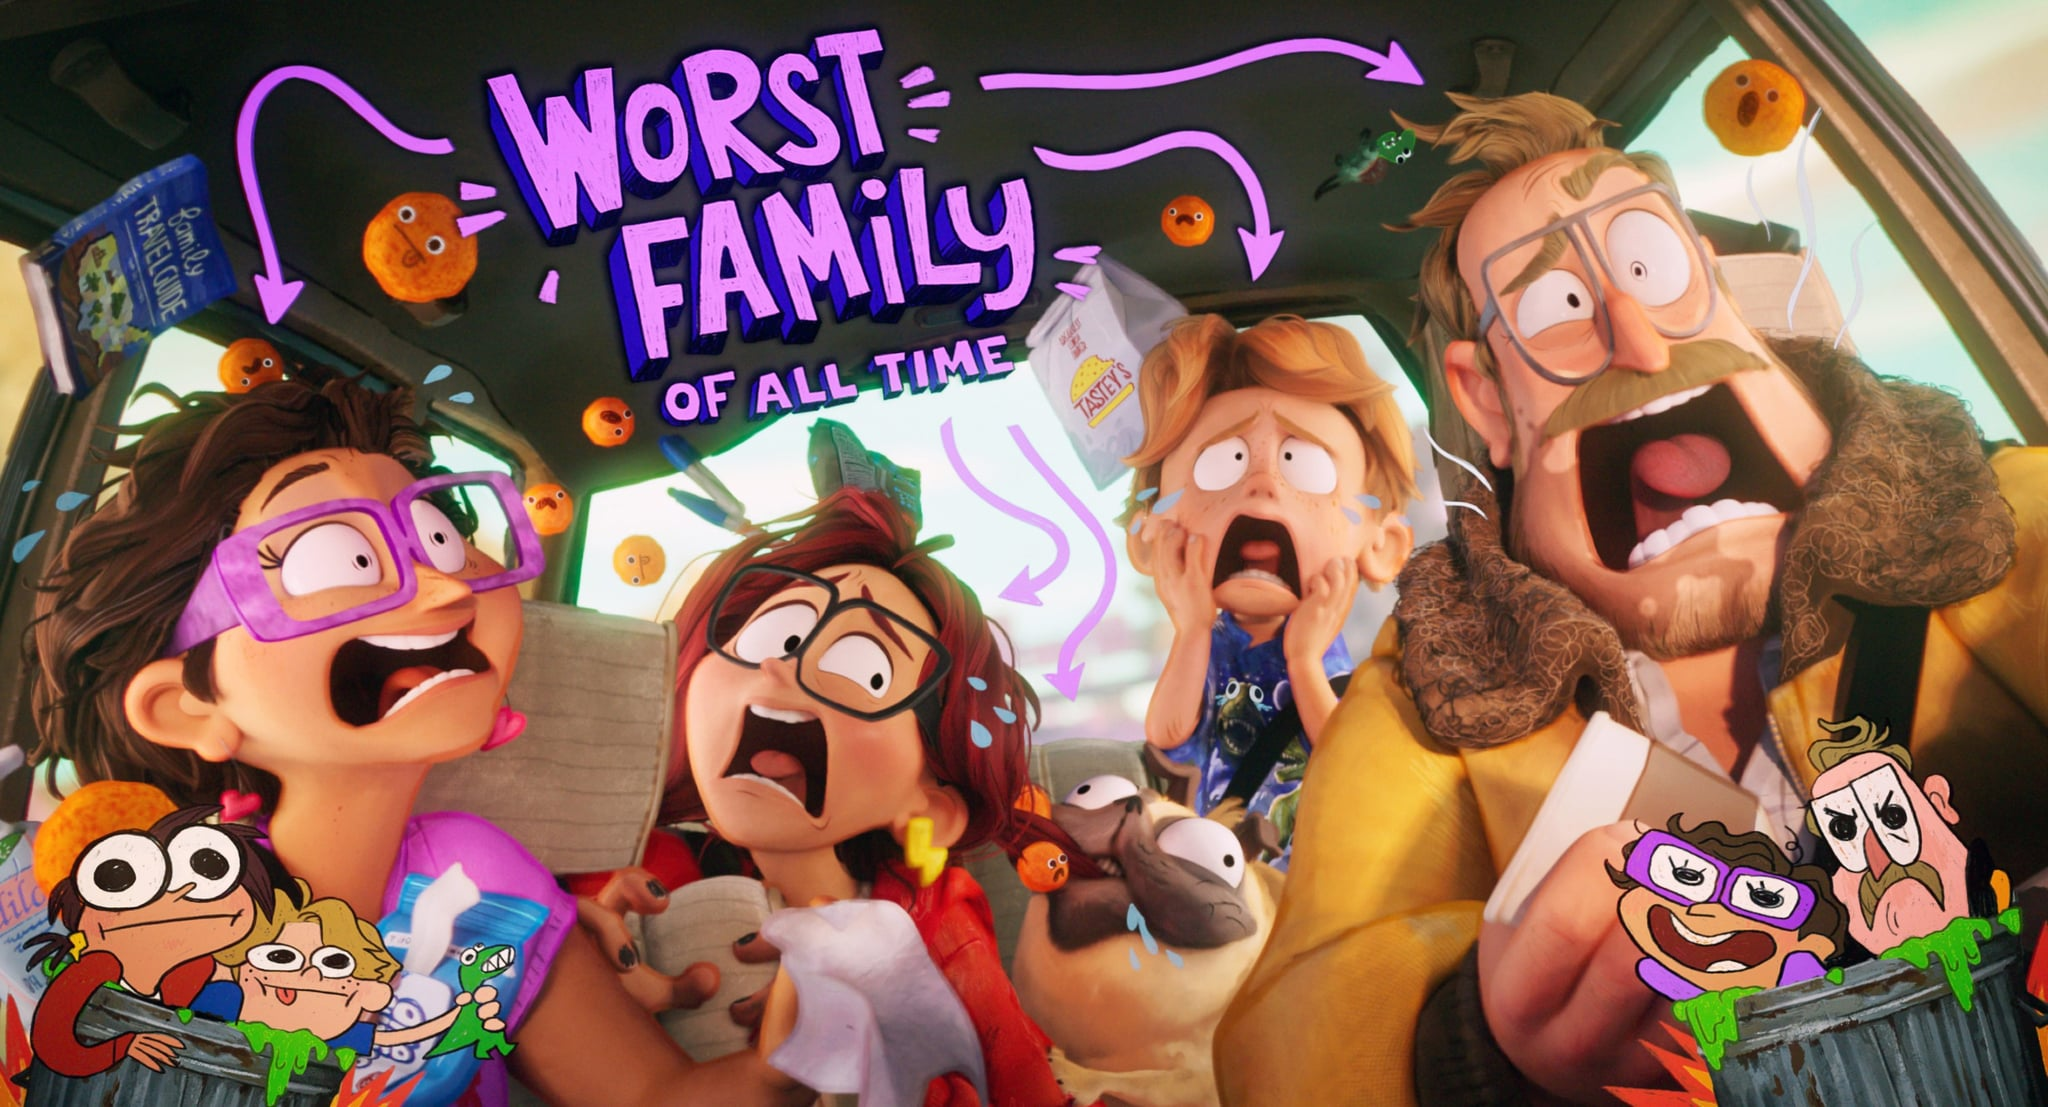 THE MITCHELLS VS. THE MACHINES, from left: Linda Mitchell (voice: Maya Rudolph), Katie Mitchell (voice: Abbi Jacobson), Monchi (Doug the Pug), Aaron Mitchell (voice: Mike Rianda), Rick Mitchell (voice Danny McBride), 2021.  Netflix / Courtesy Everett Collection